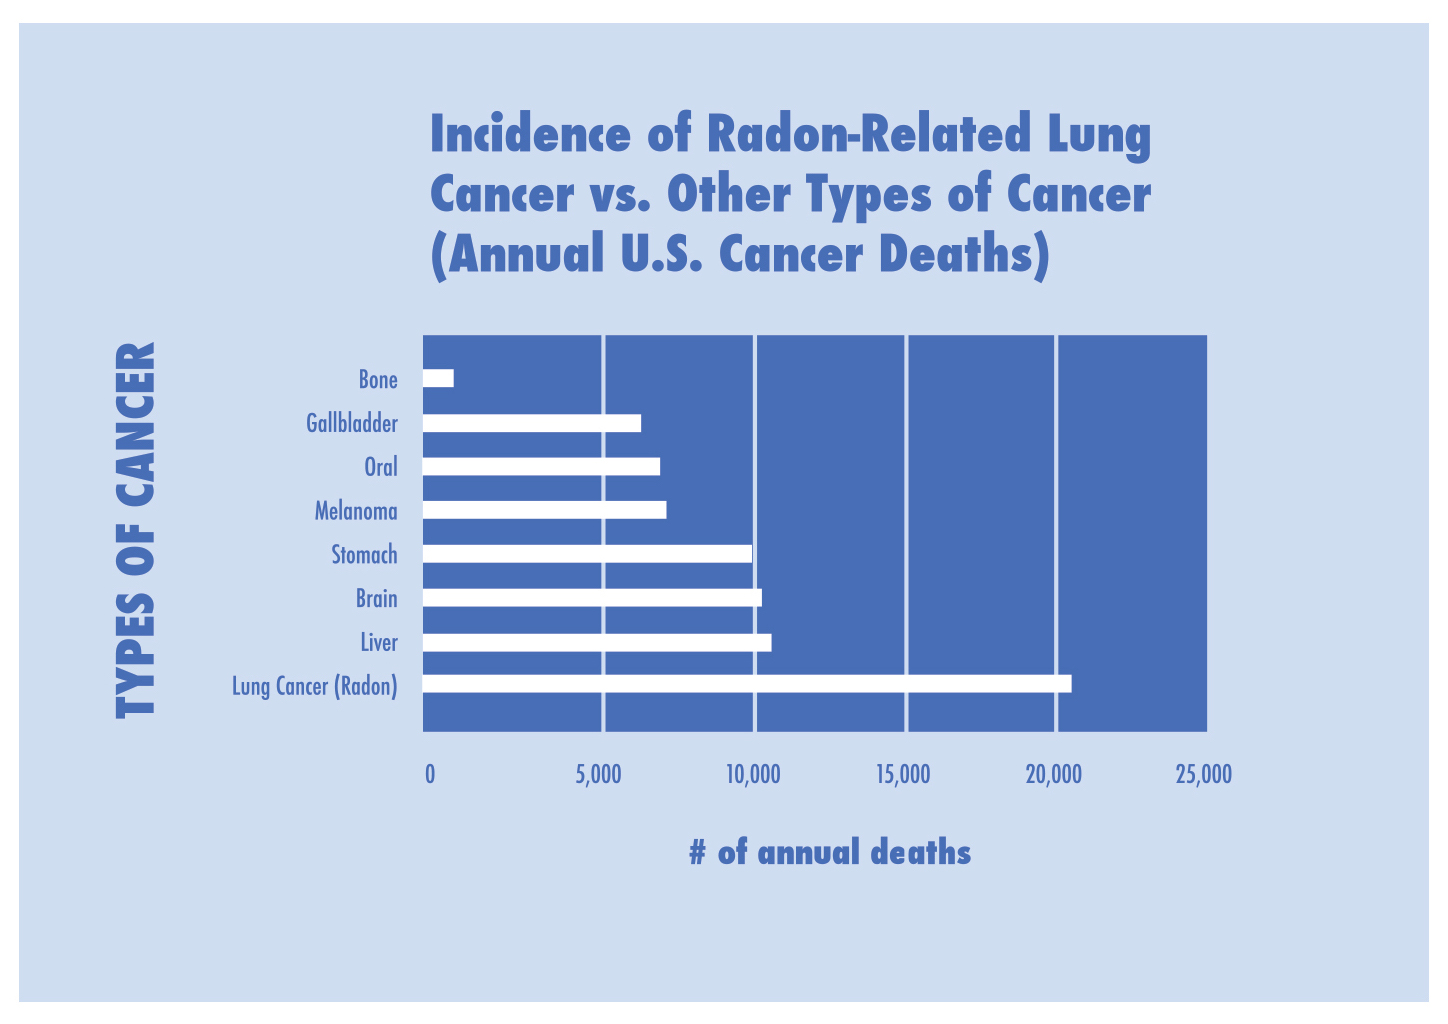 Incidence of Radon Related Lung Cancer